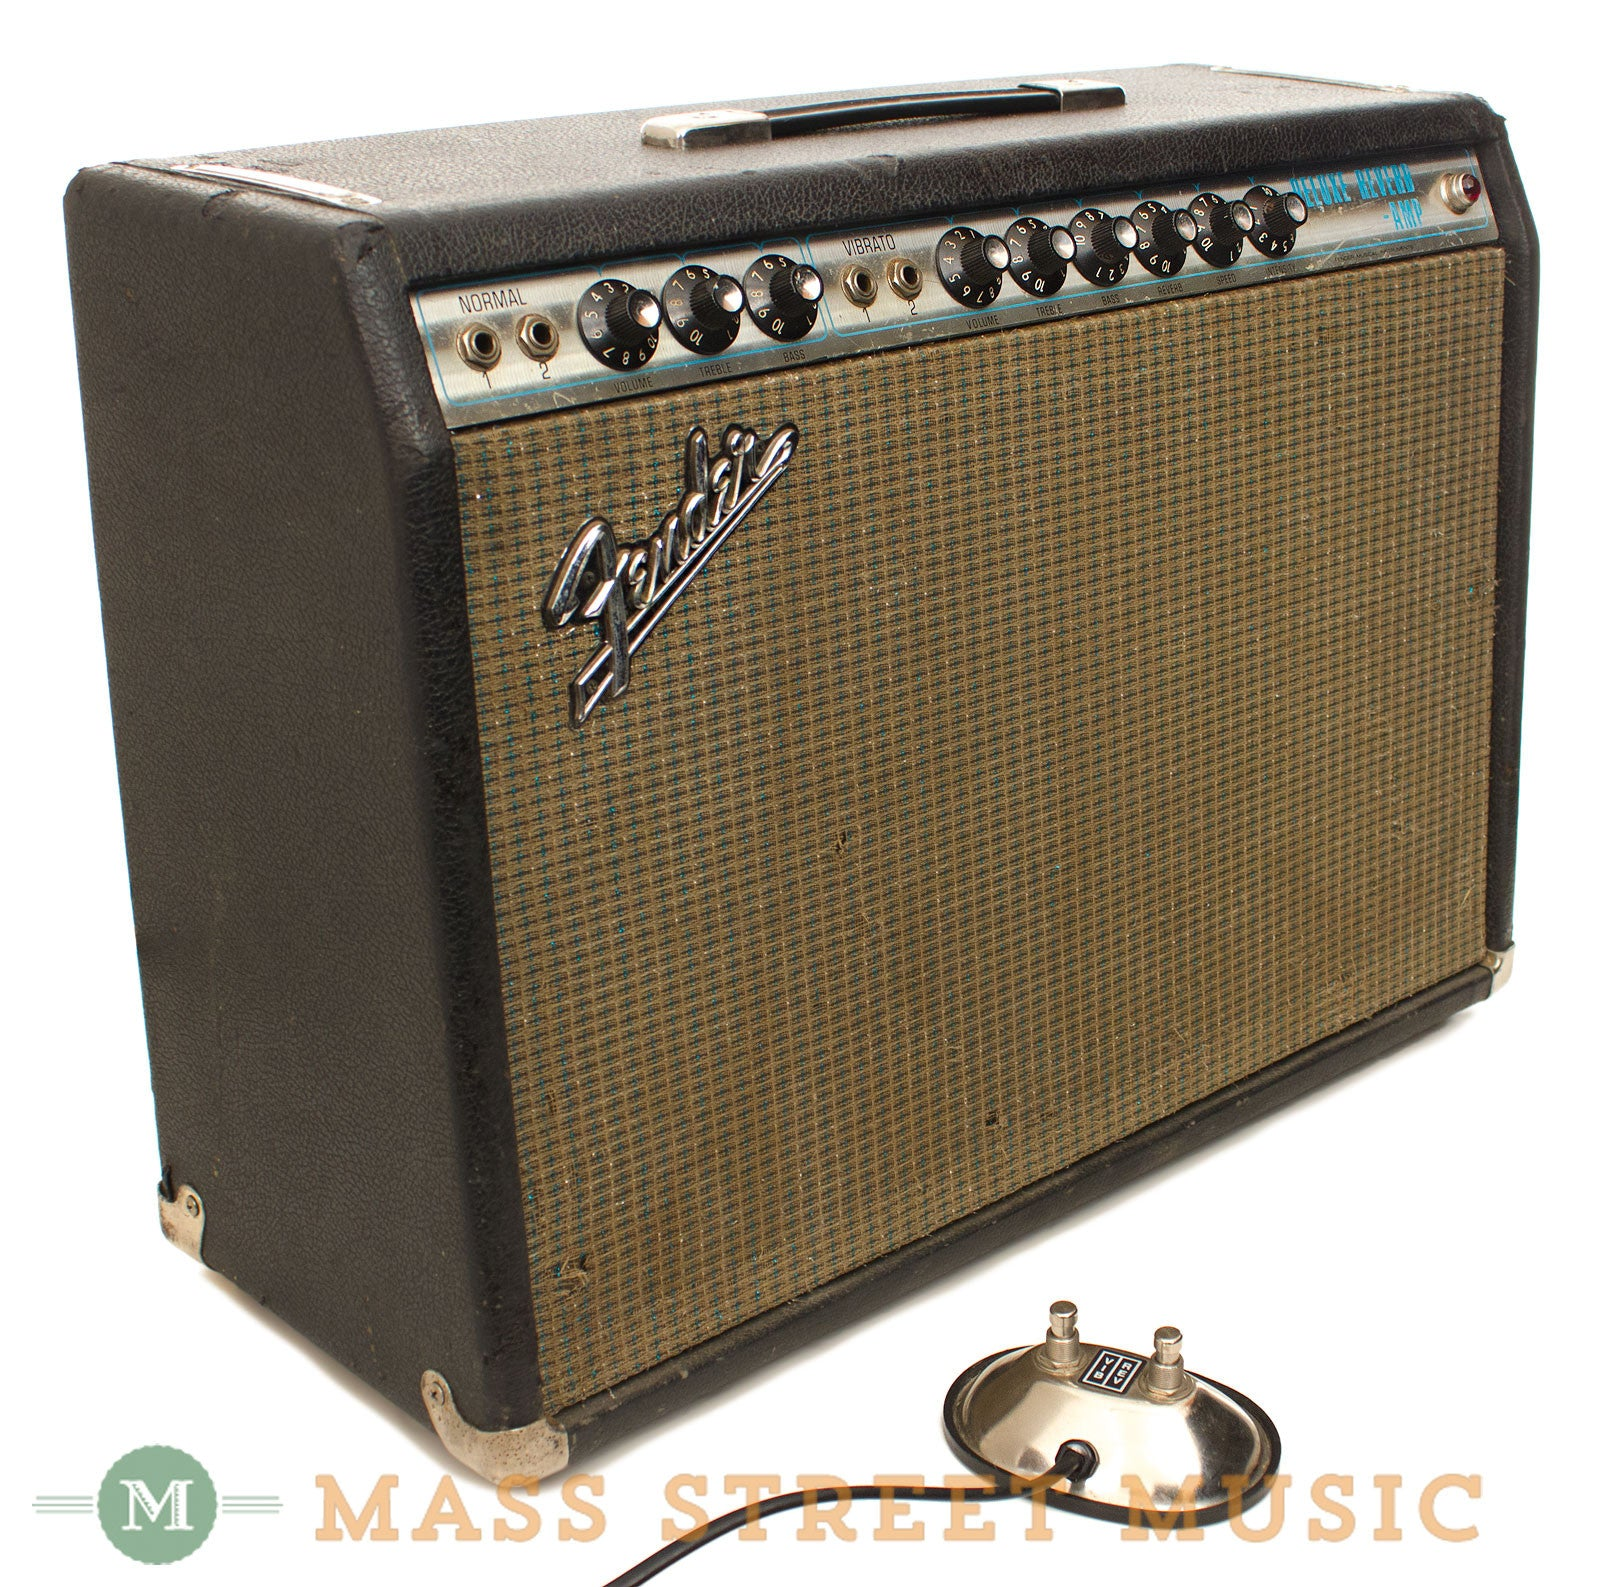 Https Daily Bcs Guitars Wiring Upgrade For Gibson Epi Es335 Deluxereverb Silverpanel Front Anglev1411075540